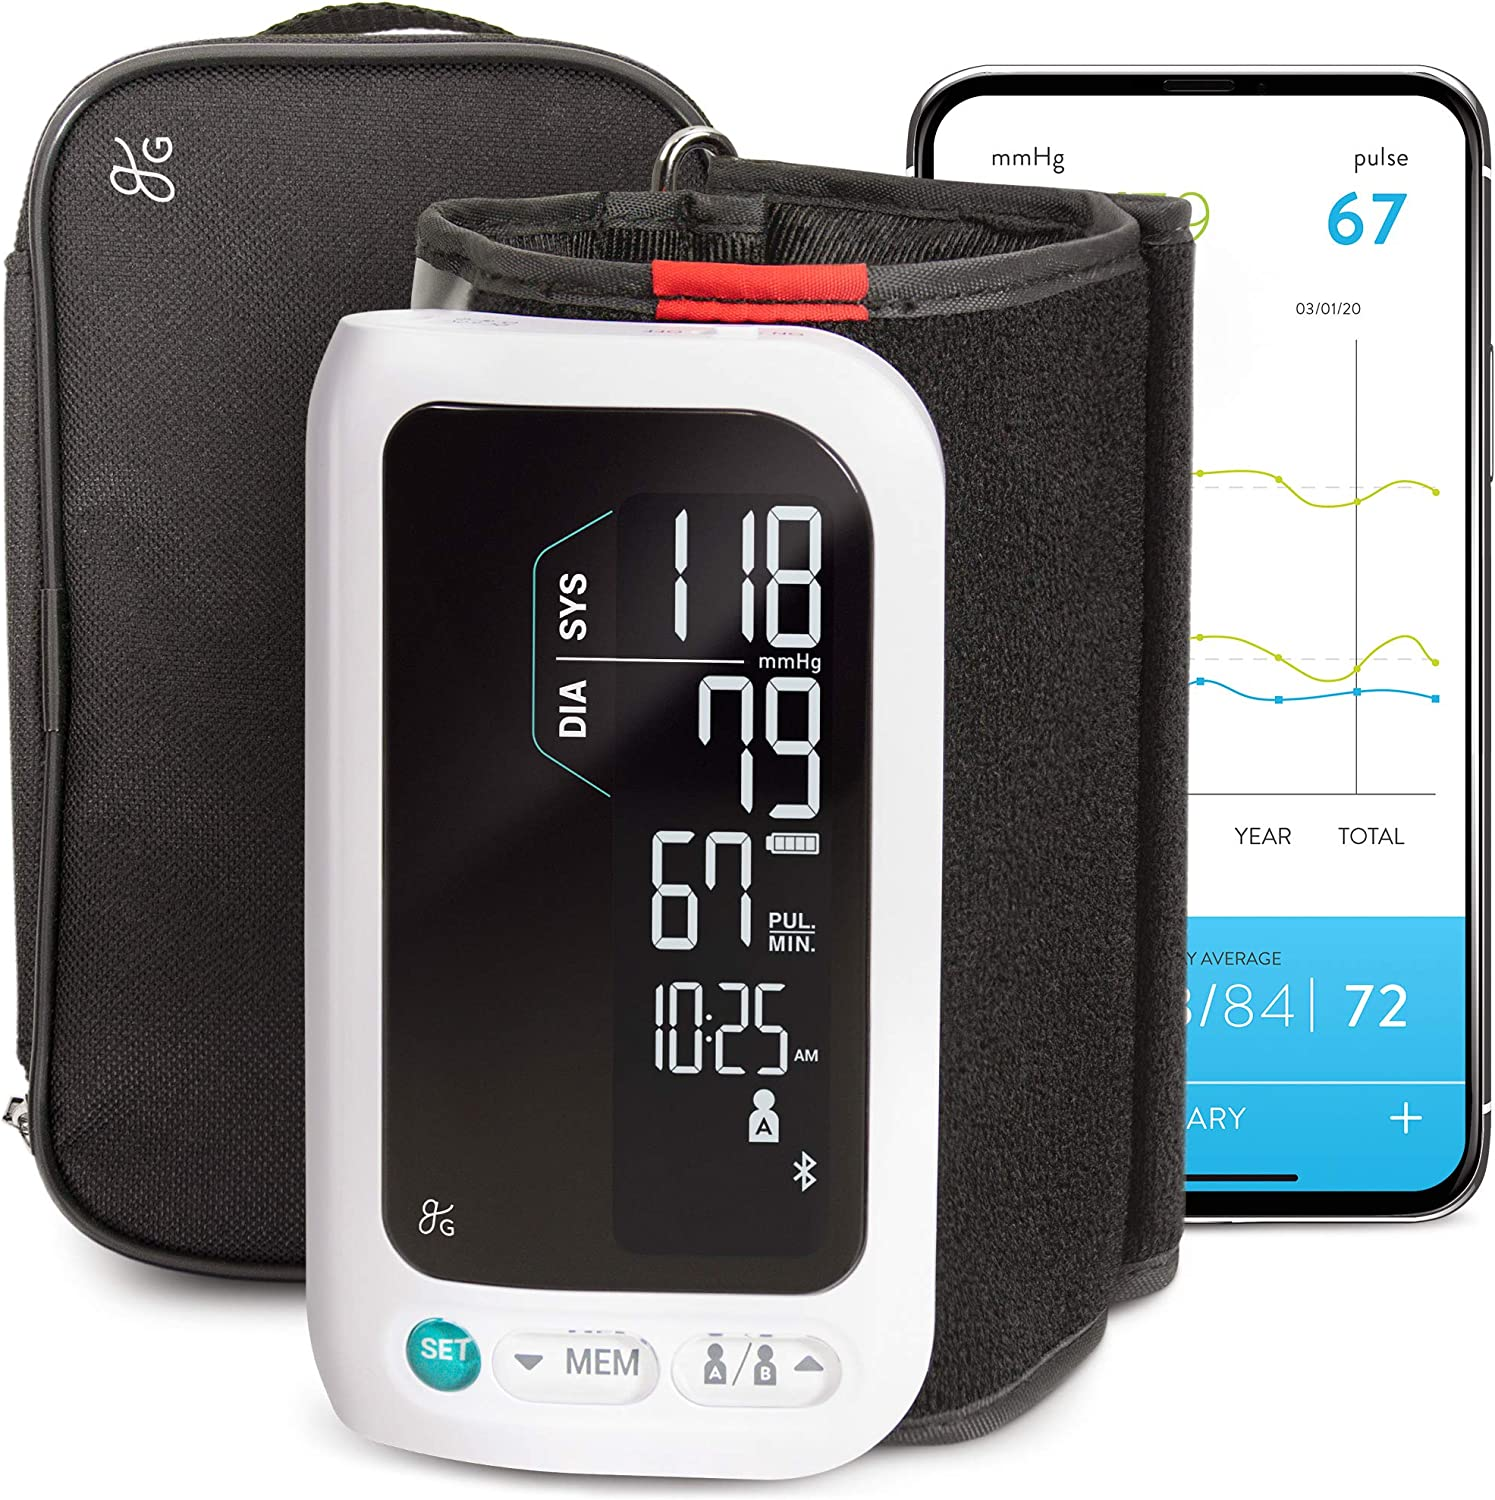 GreaterGoods All-in-One Smart Blood Pressure Monitor Pack, Upper Arm Cuff, Cordless, Wireless, Rechargeable, Automatic and Bluetooth (Upper Arm Cuff)